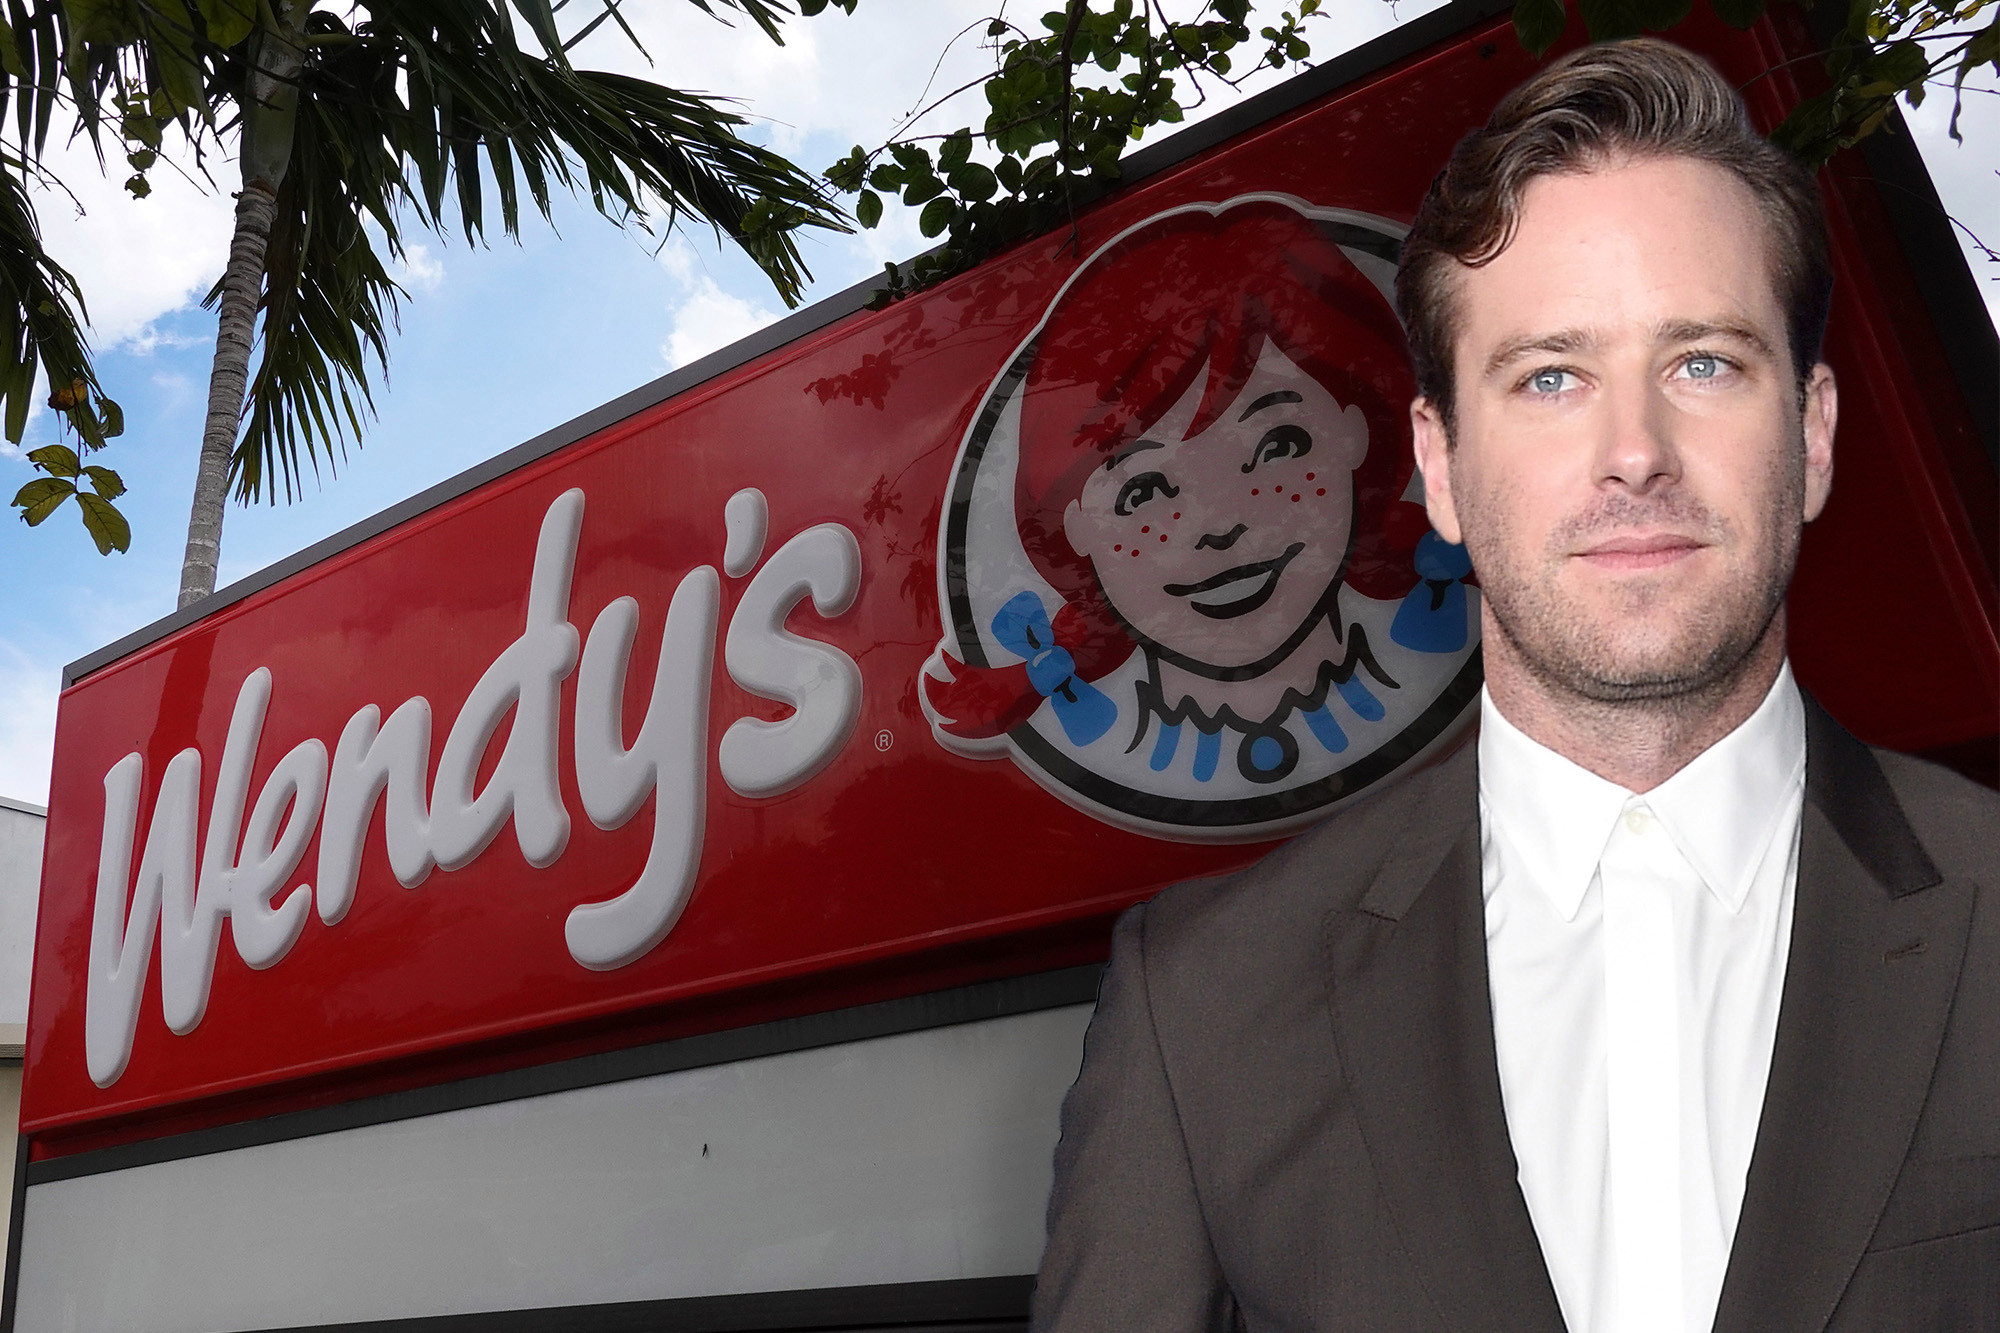 Wendys spares no one on NationalRoastDay — even Armie Hammer